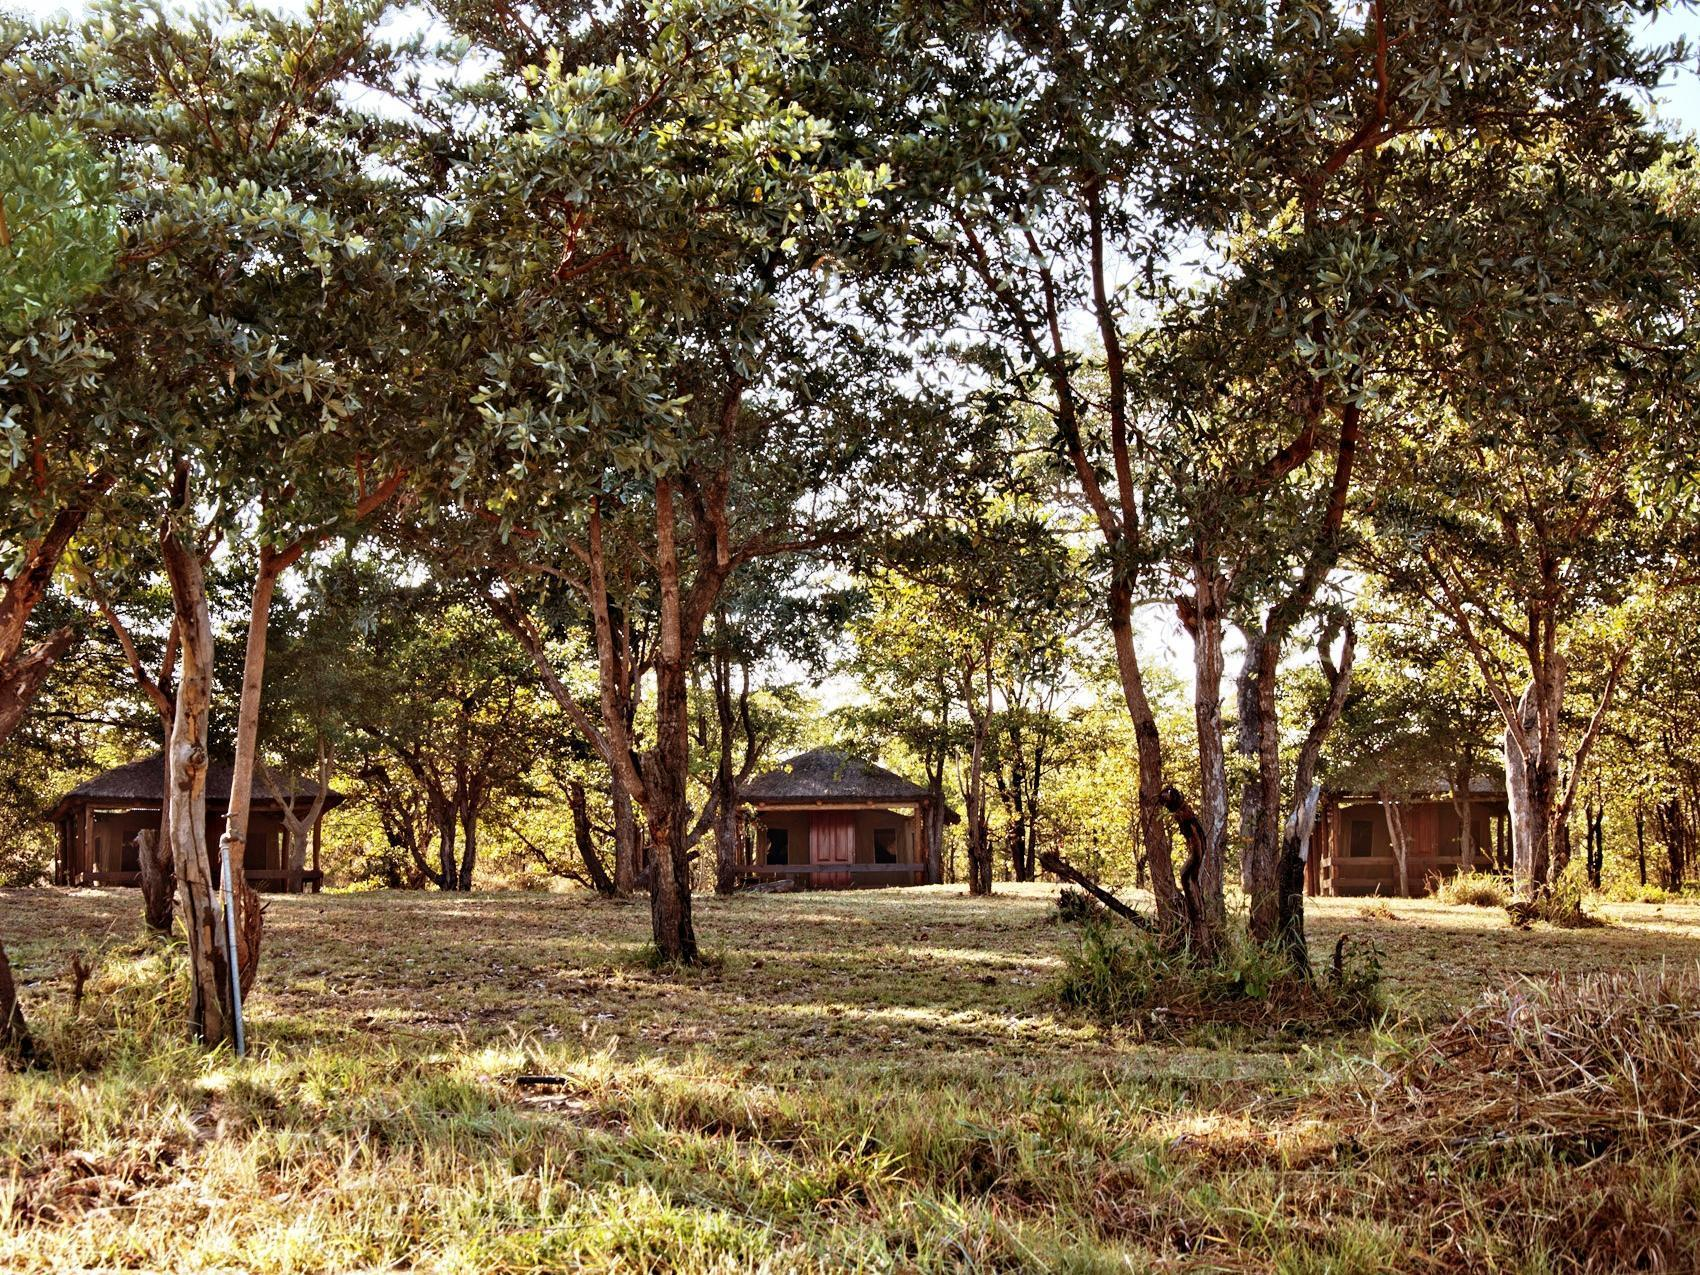 Shindzela Tented Safari Camp and Walking Safaris Accommodation, Ehlanzeni